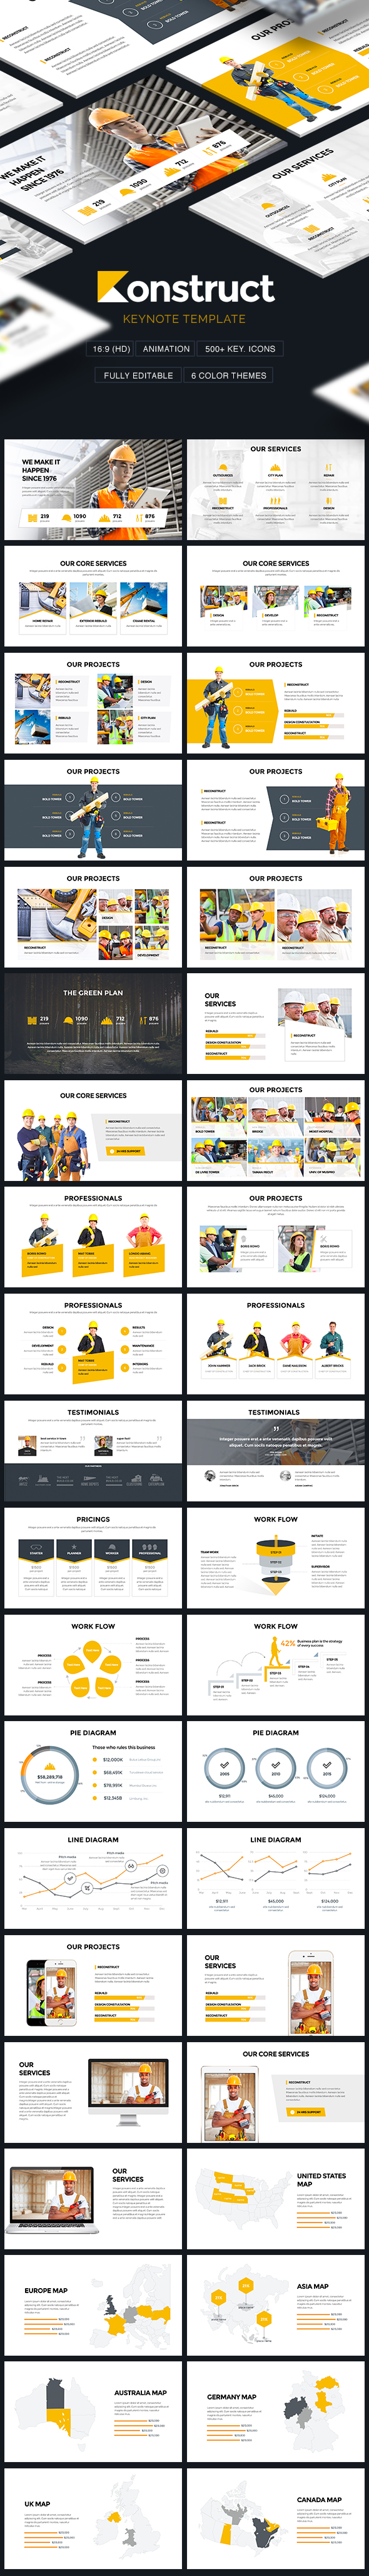 Konstruct - Construction & Architecture Theme Keynote Template - Keynote Templates Presentation Templates